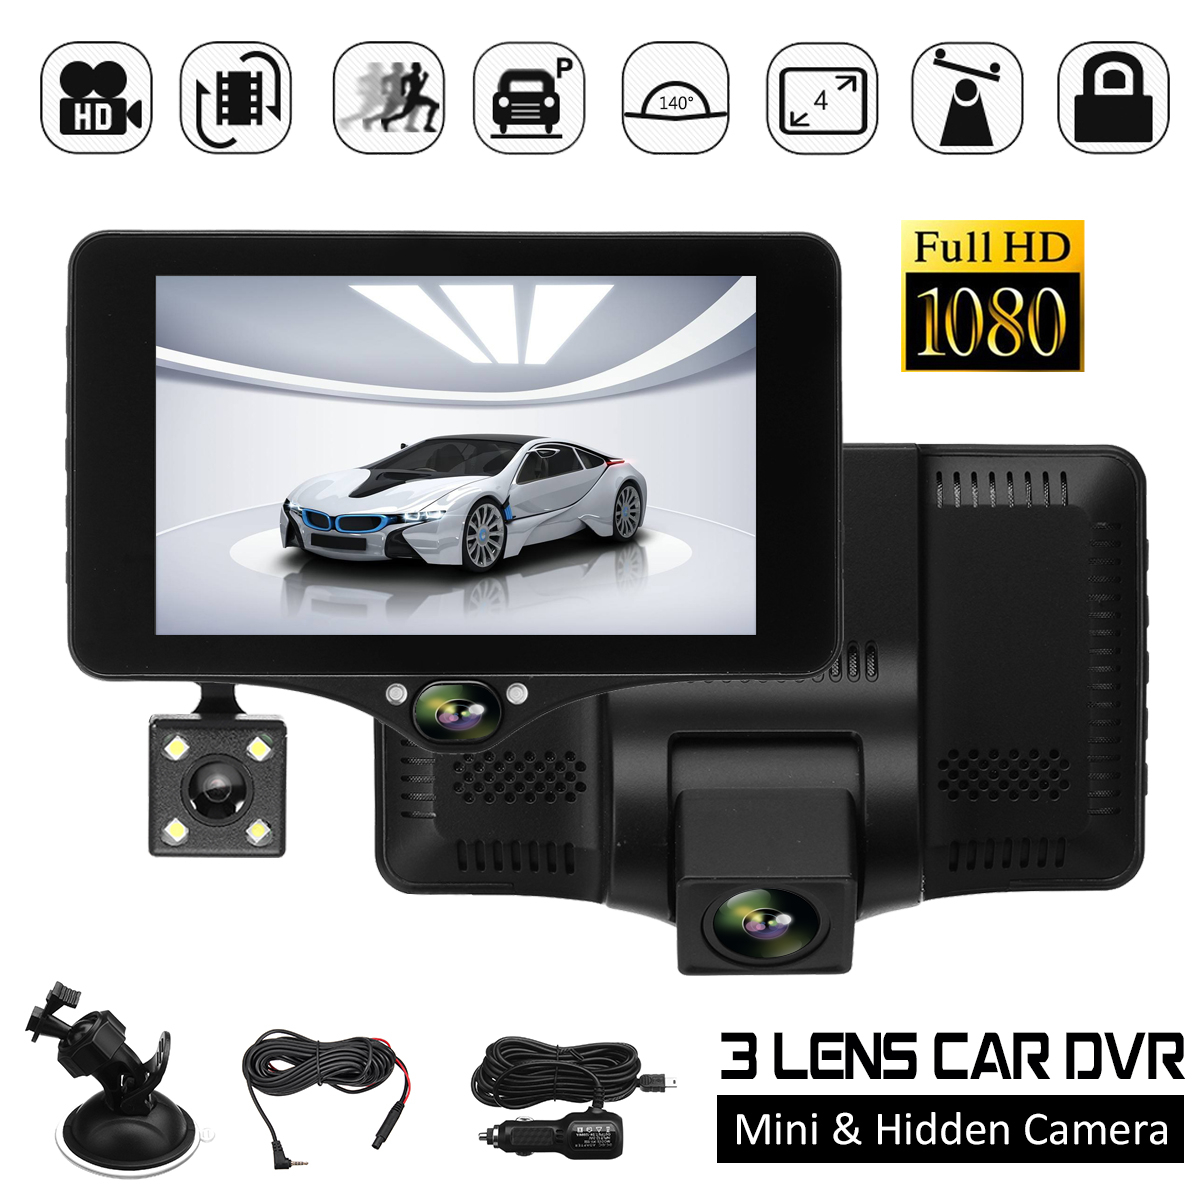 4 inch 3 Lens Full HD 1080P Car DVR G-sensor Video Recorder Dashcam Camcorder Registrator Rearview Camera Night Vision